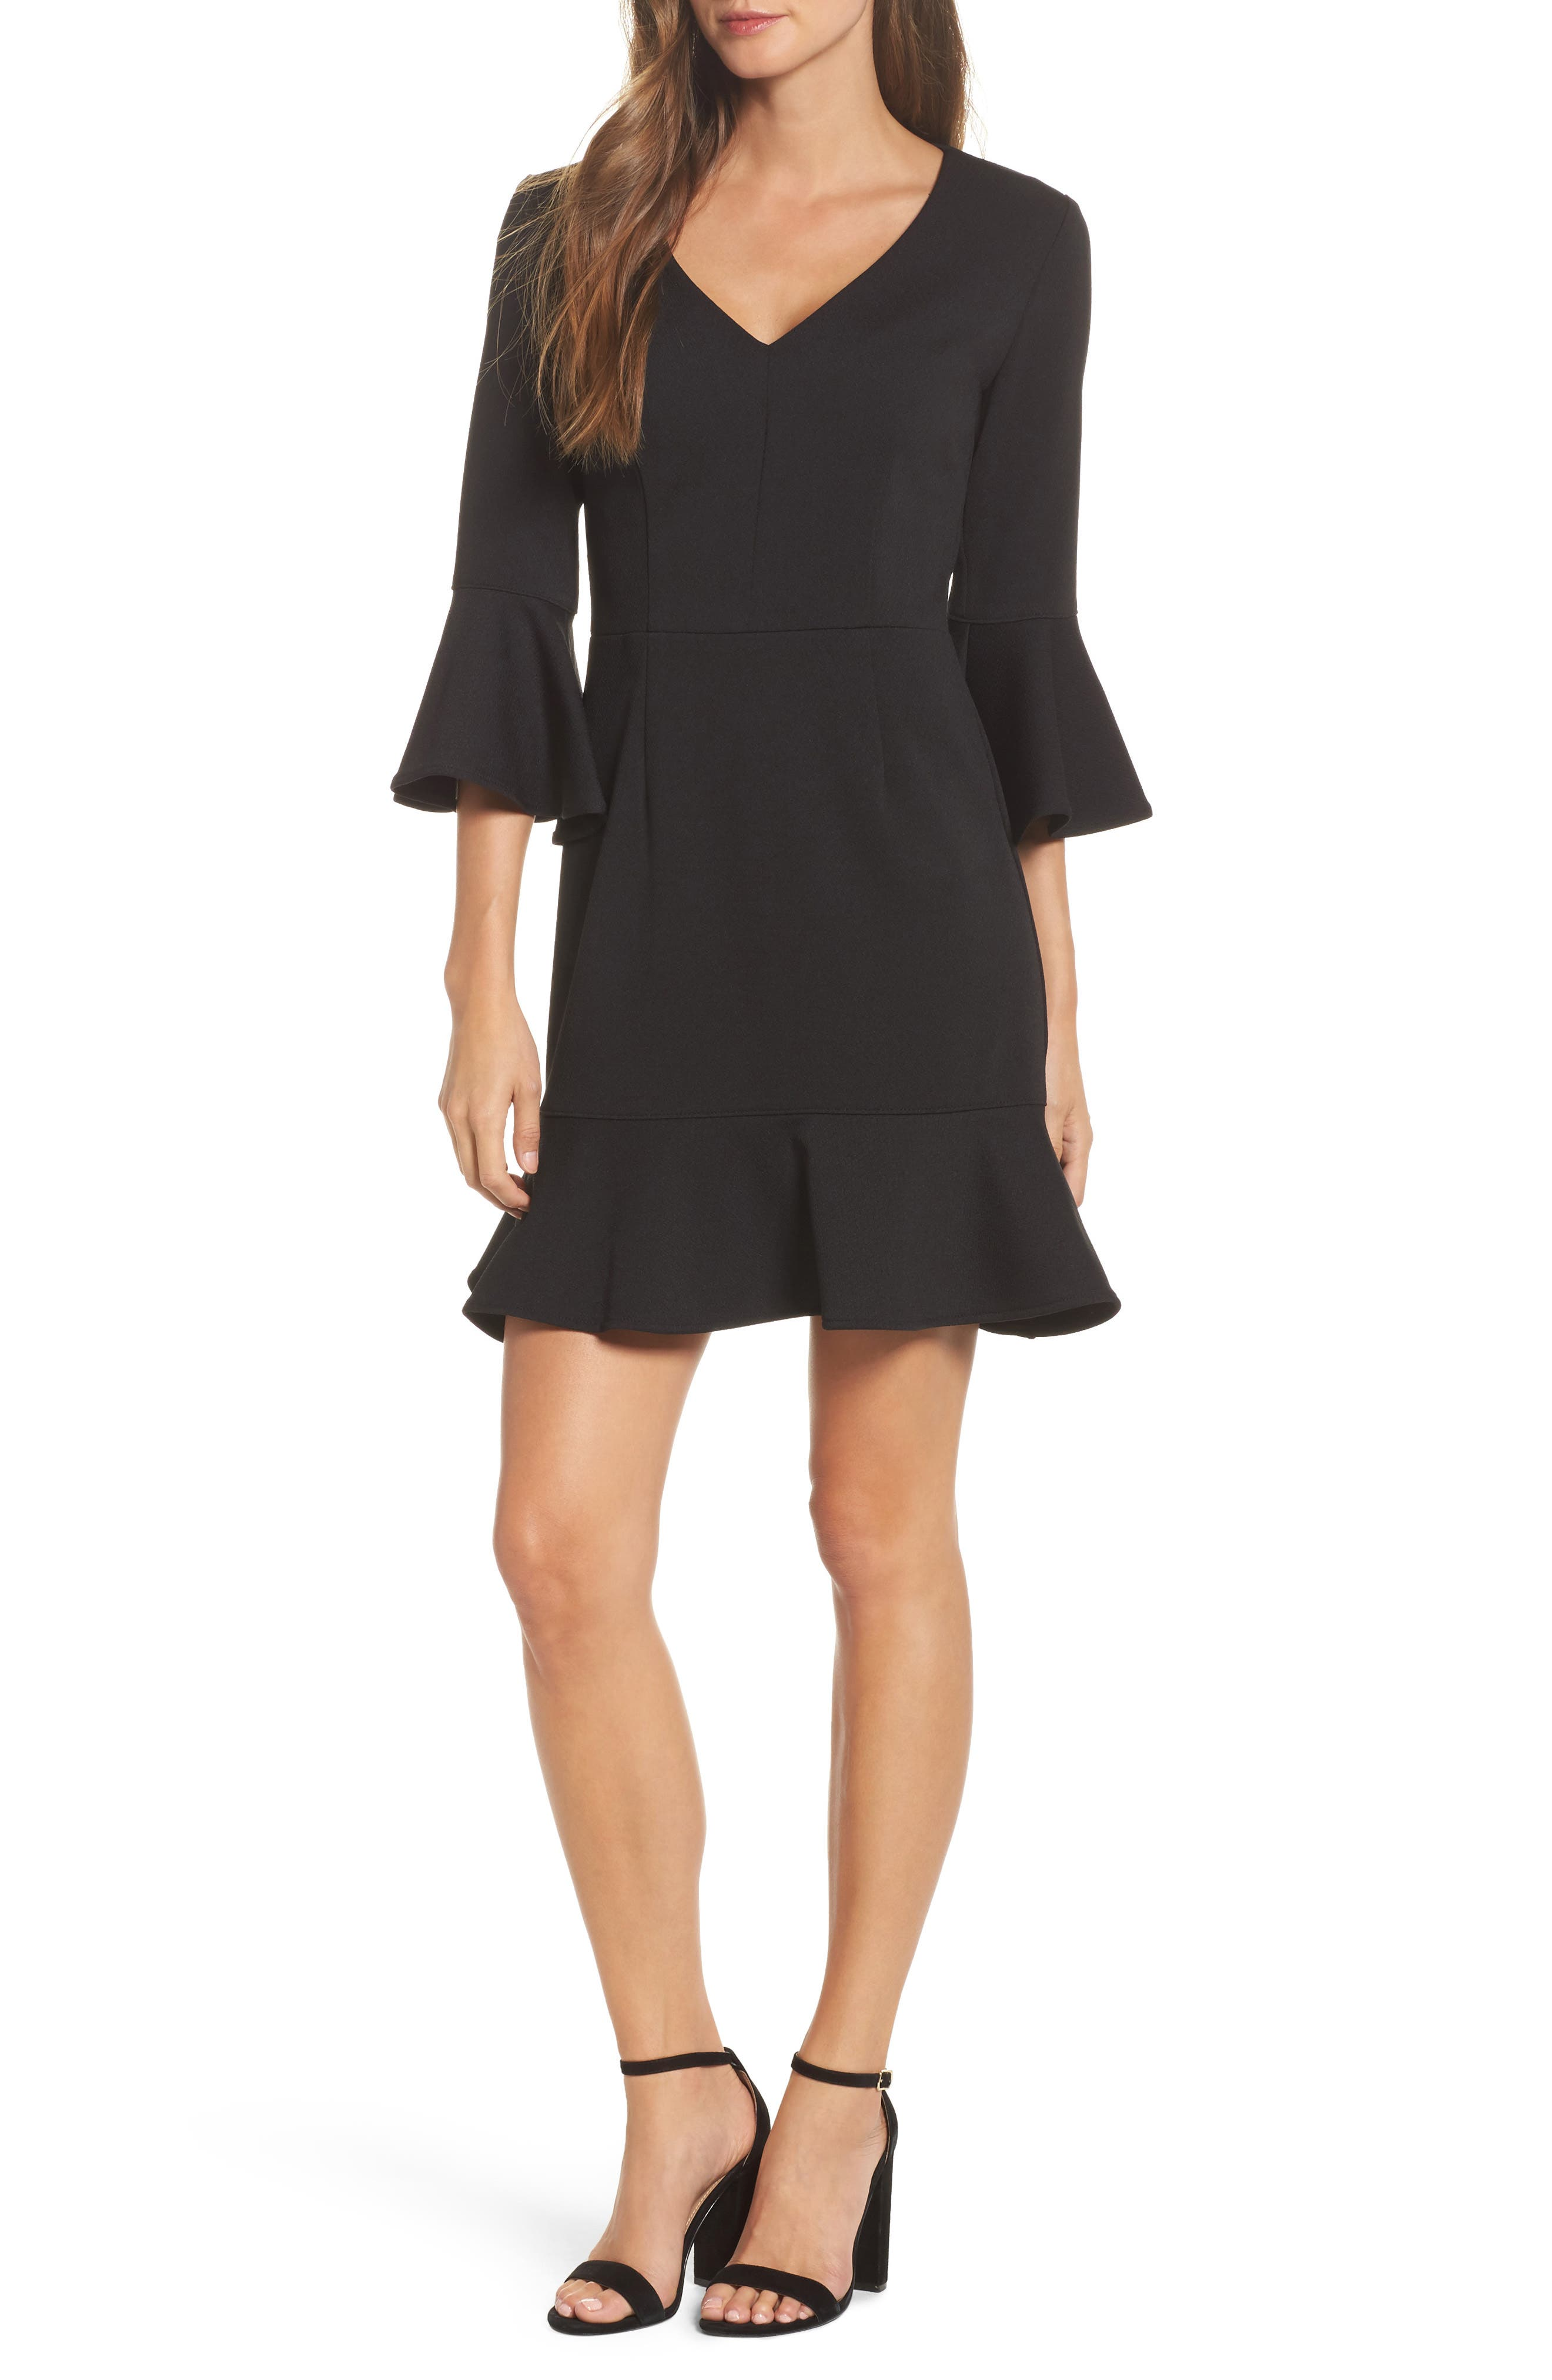 Clearwater Ruffle Sheath Dress,                         Main,                         color, Black